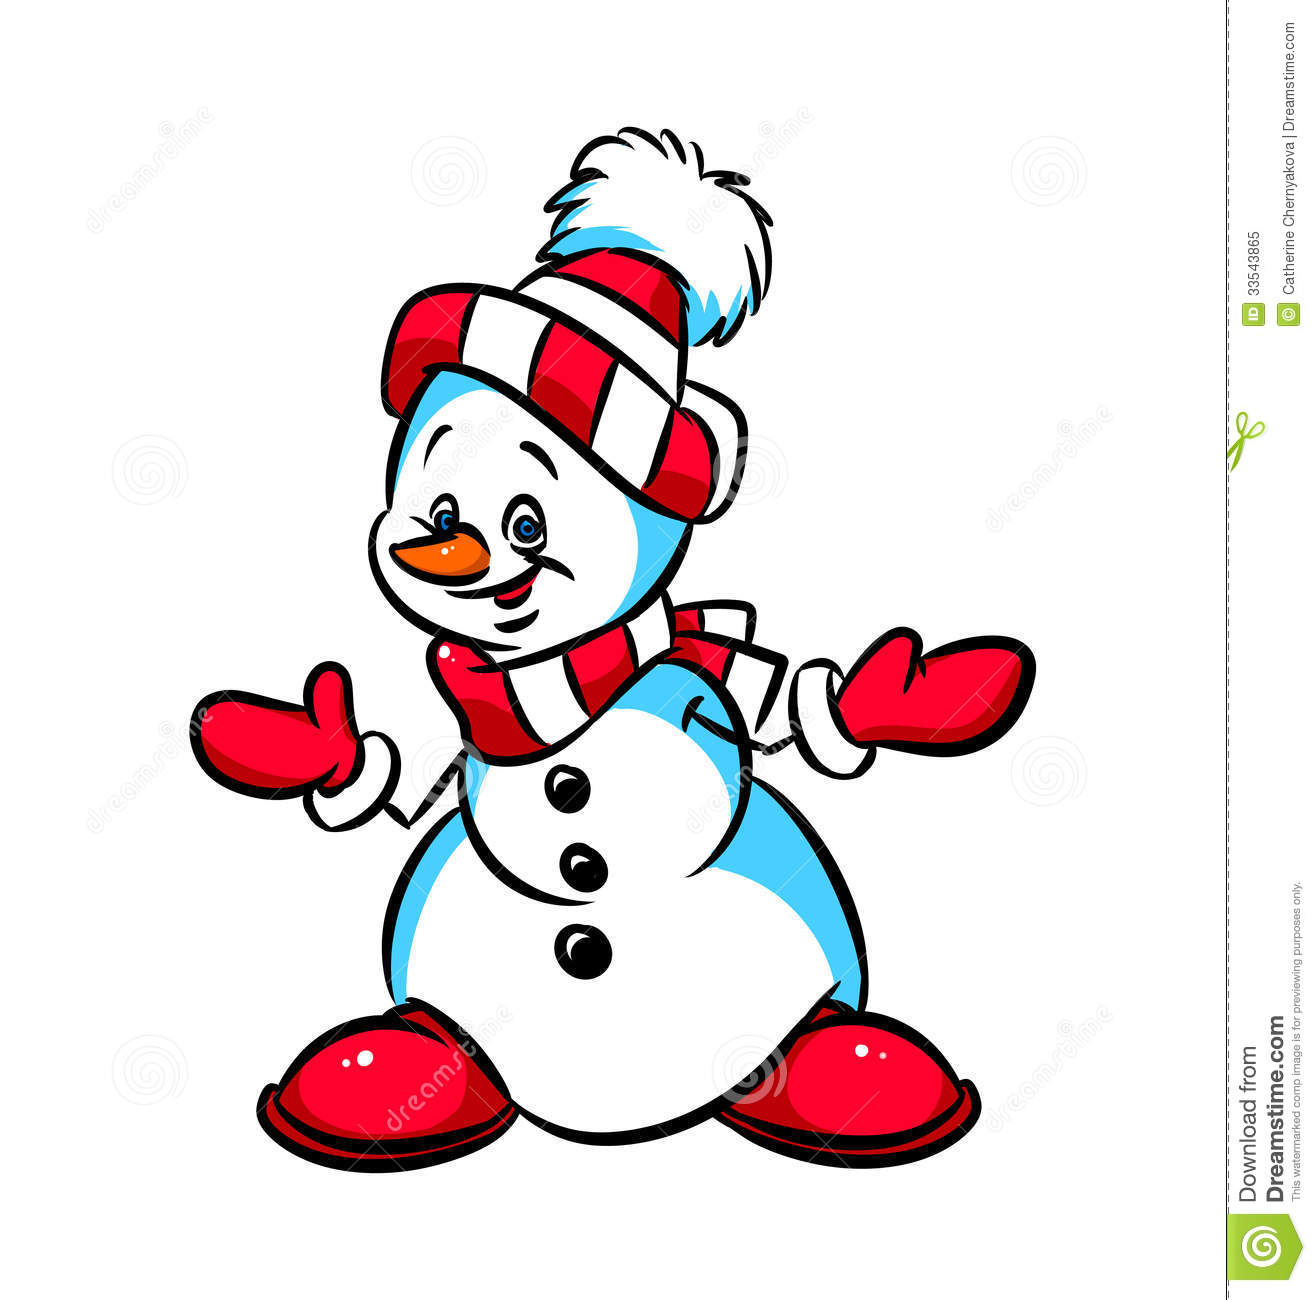 Christmas Snowman Cartoon Royalty Free Stock Image Auto Electrical Yale Glp100mj Wiring Diagram